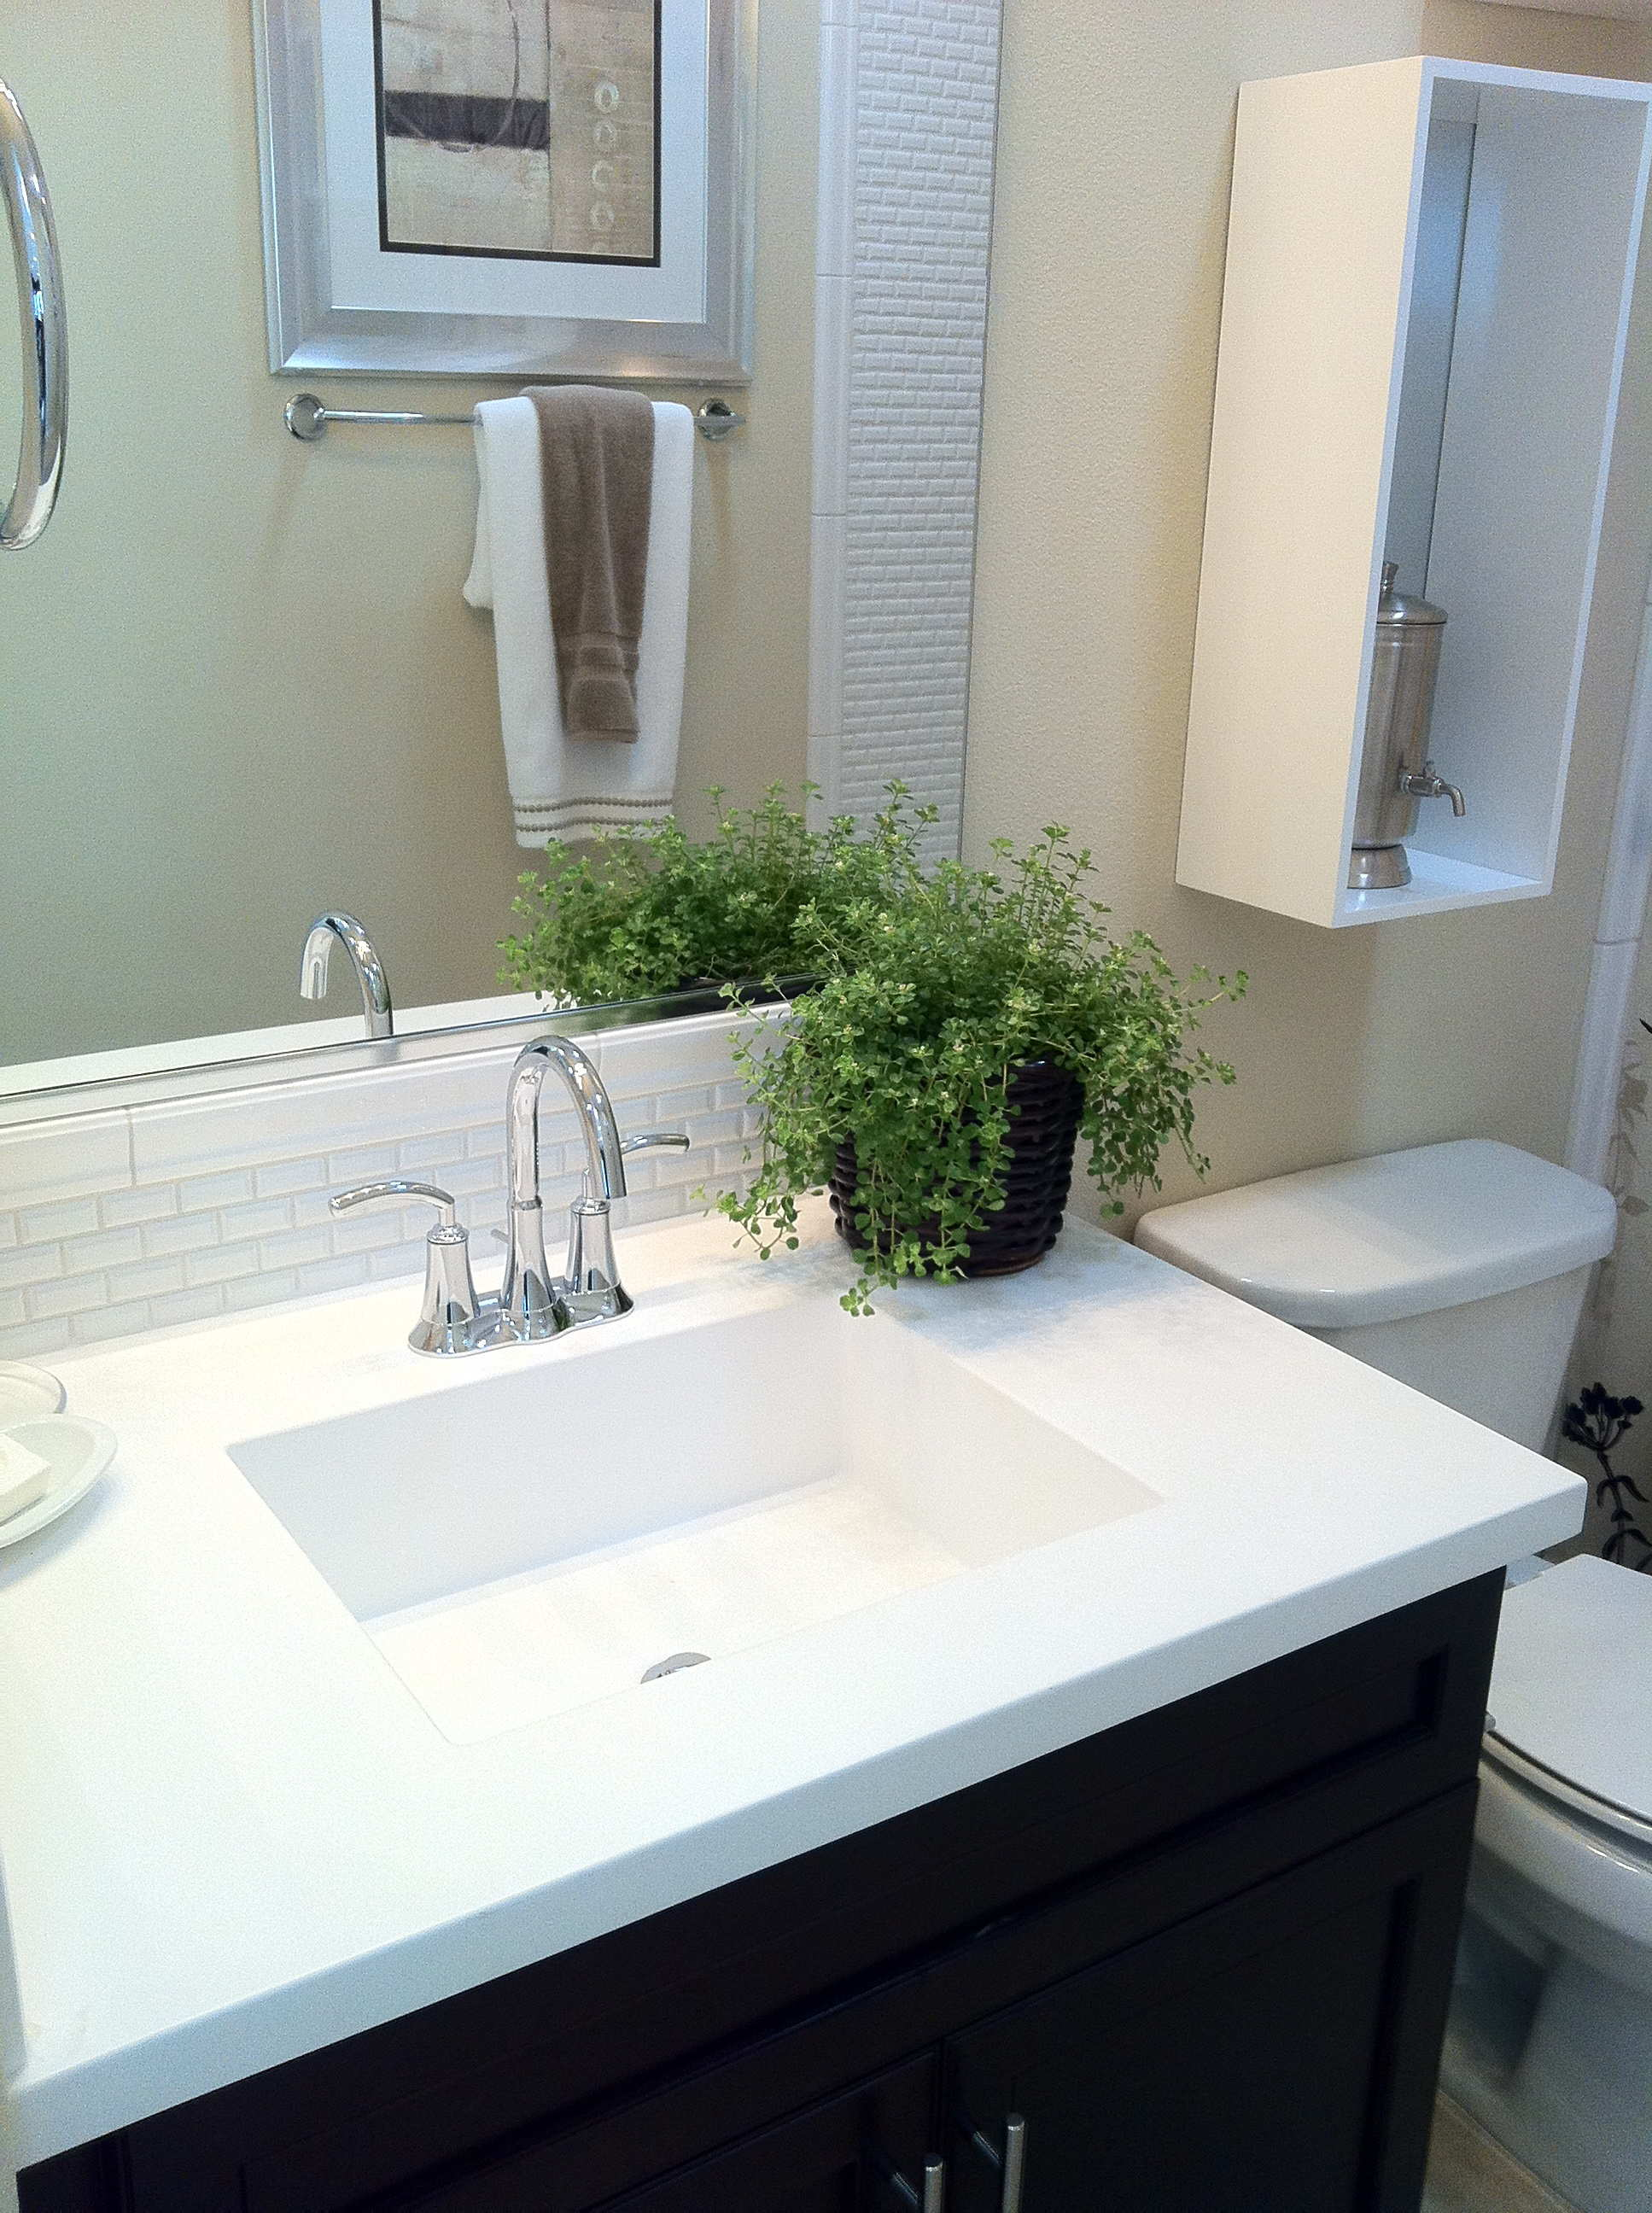 Marble Sinks Bathroom : ... Cultured Marble Countertop with ?True? Rectangular Molded-in Sink